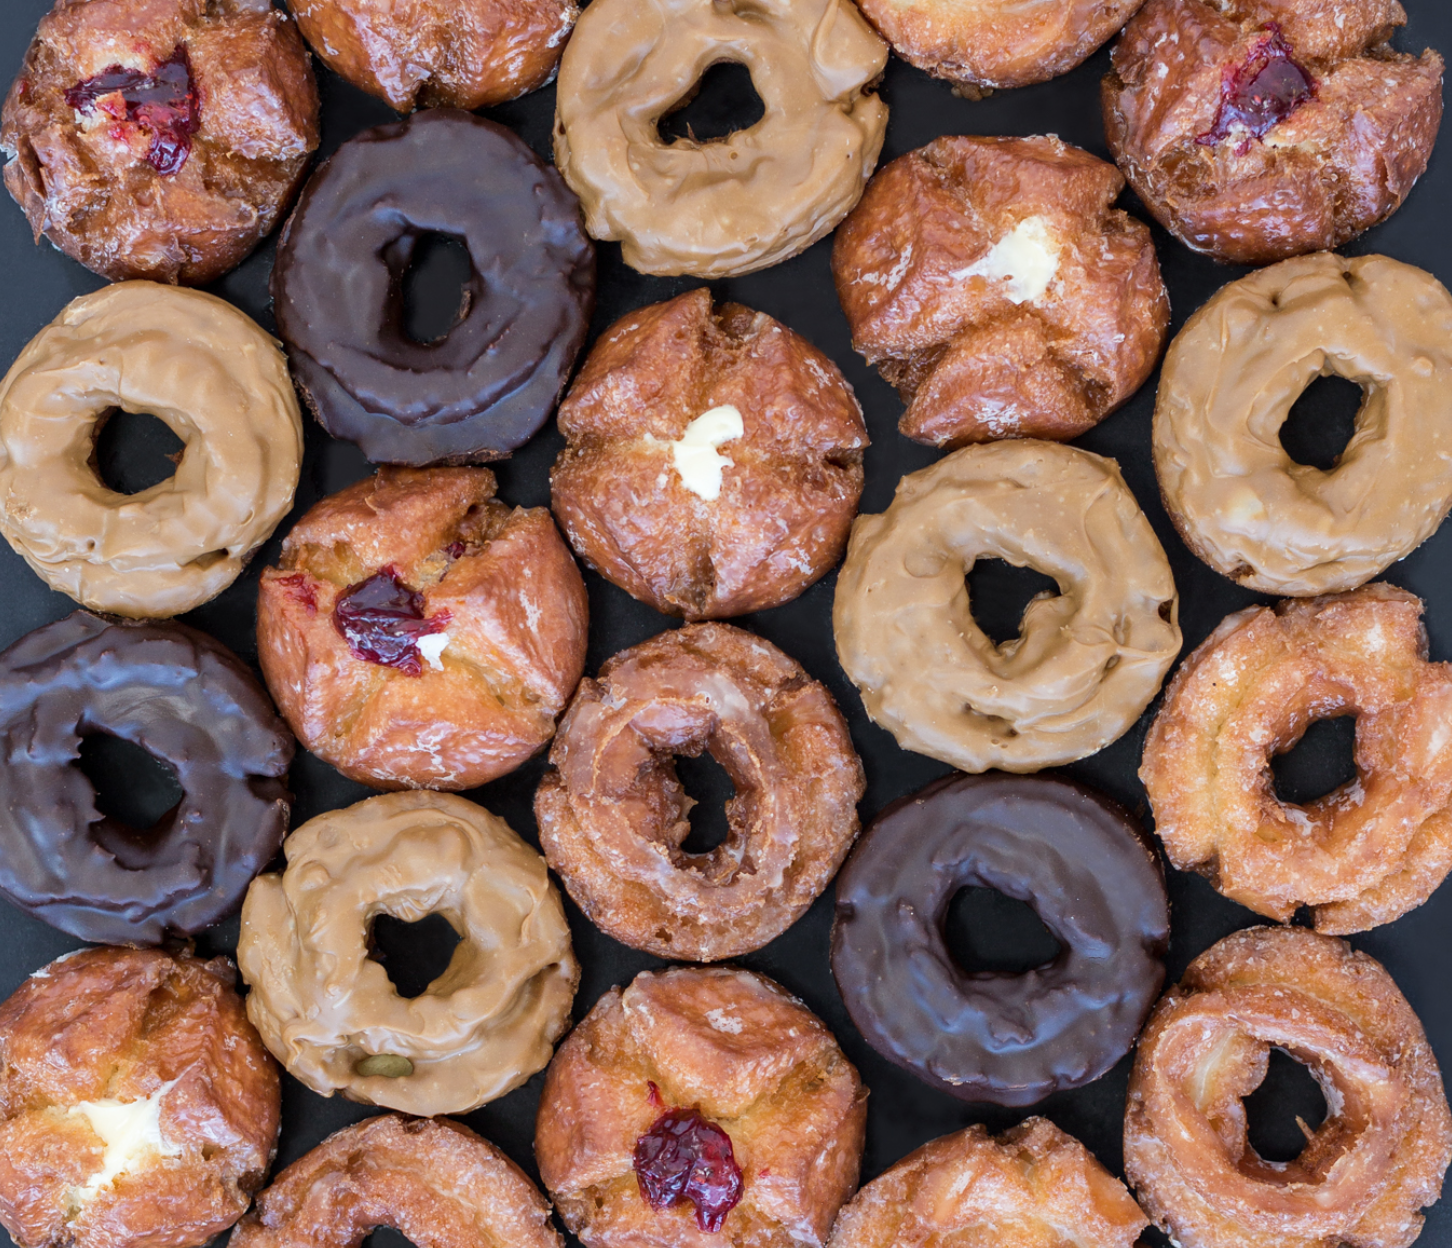 Donut Factory offers 80 different types of donuts on a daily basis. From classics like cake donuts, maple bars and fritters to fresh flavors like Fruity Pebbles and Oreo. (Courtesy: Donut Factory)<p></p>